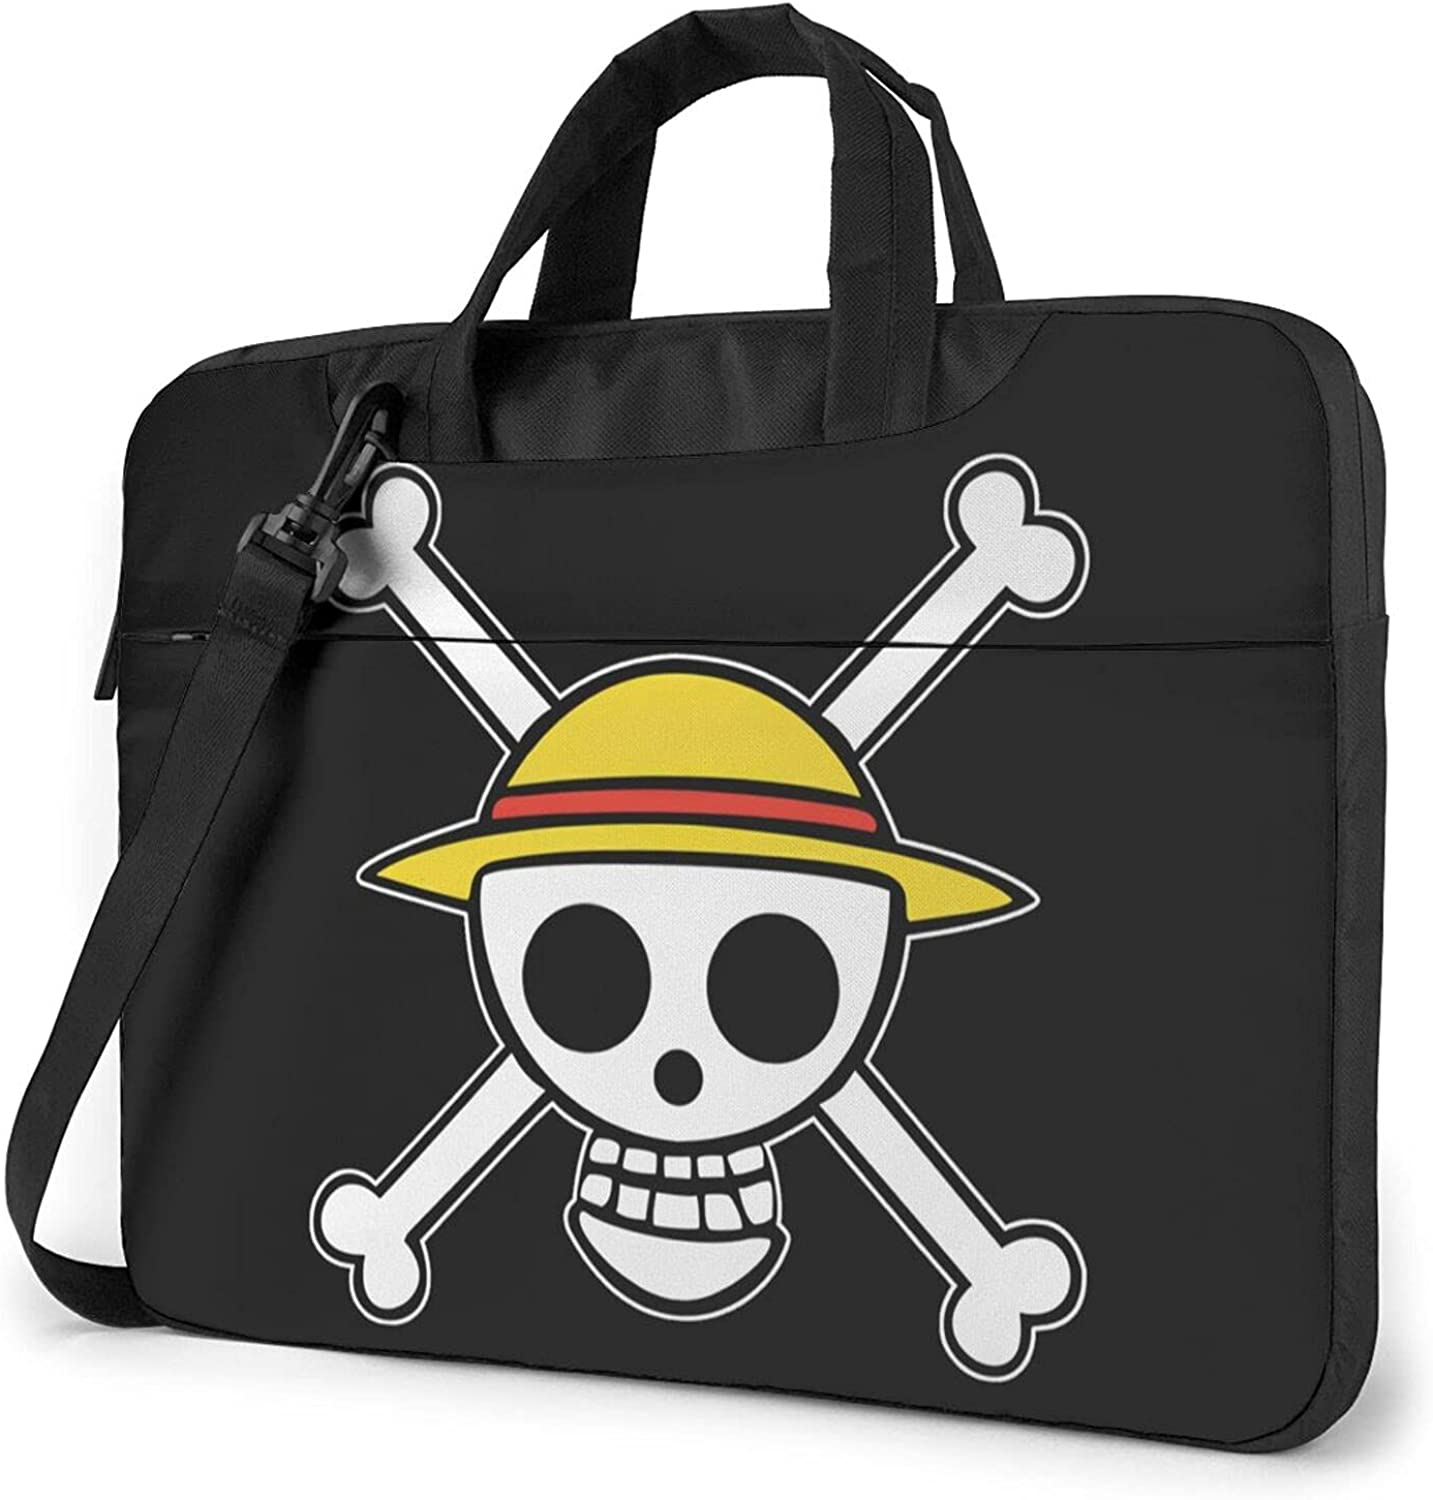 One Piece Laptop Sleeve Bag Ultra Work Briefcase Finally popular Ranking TOP19 brand Portable Should